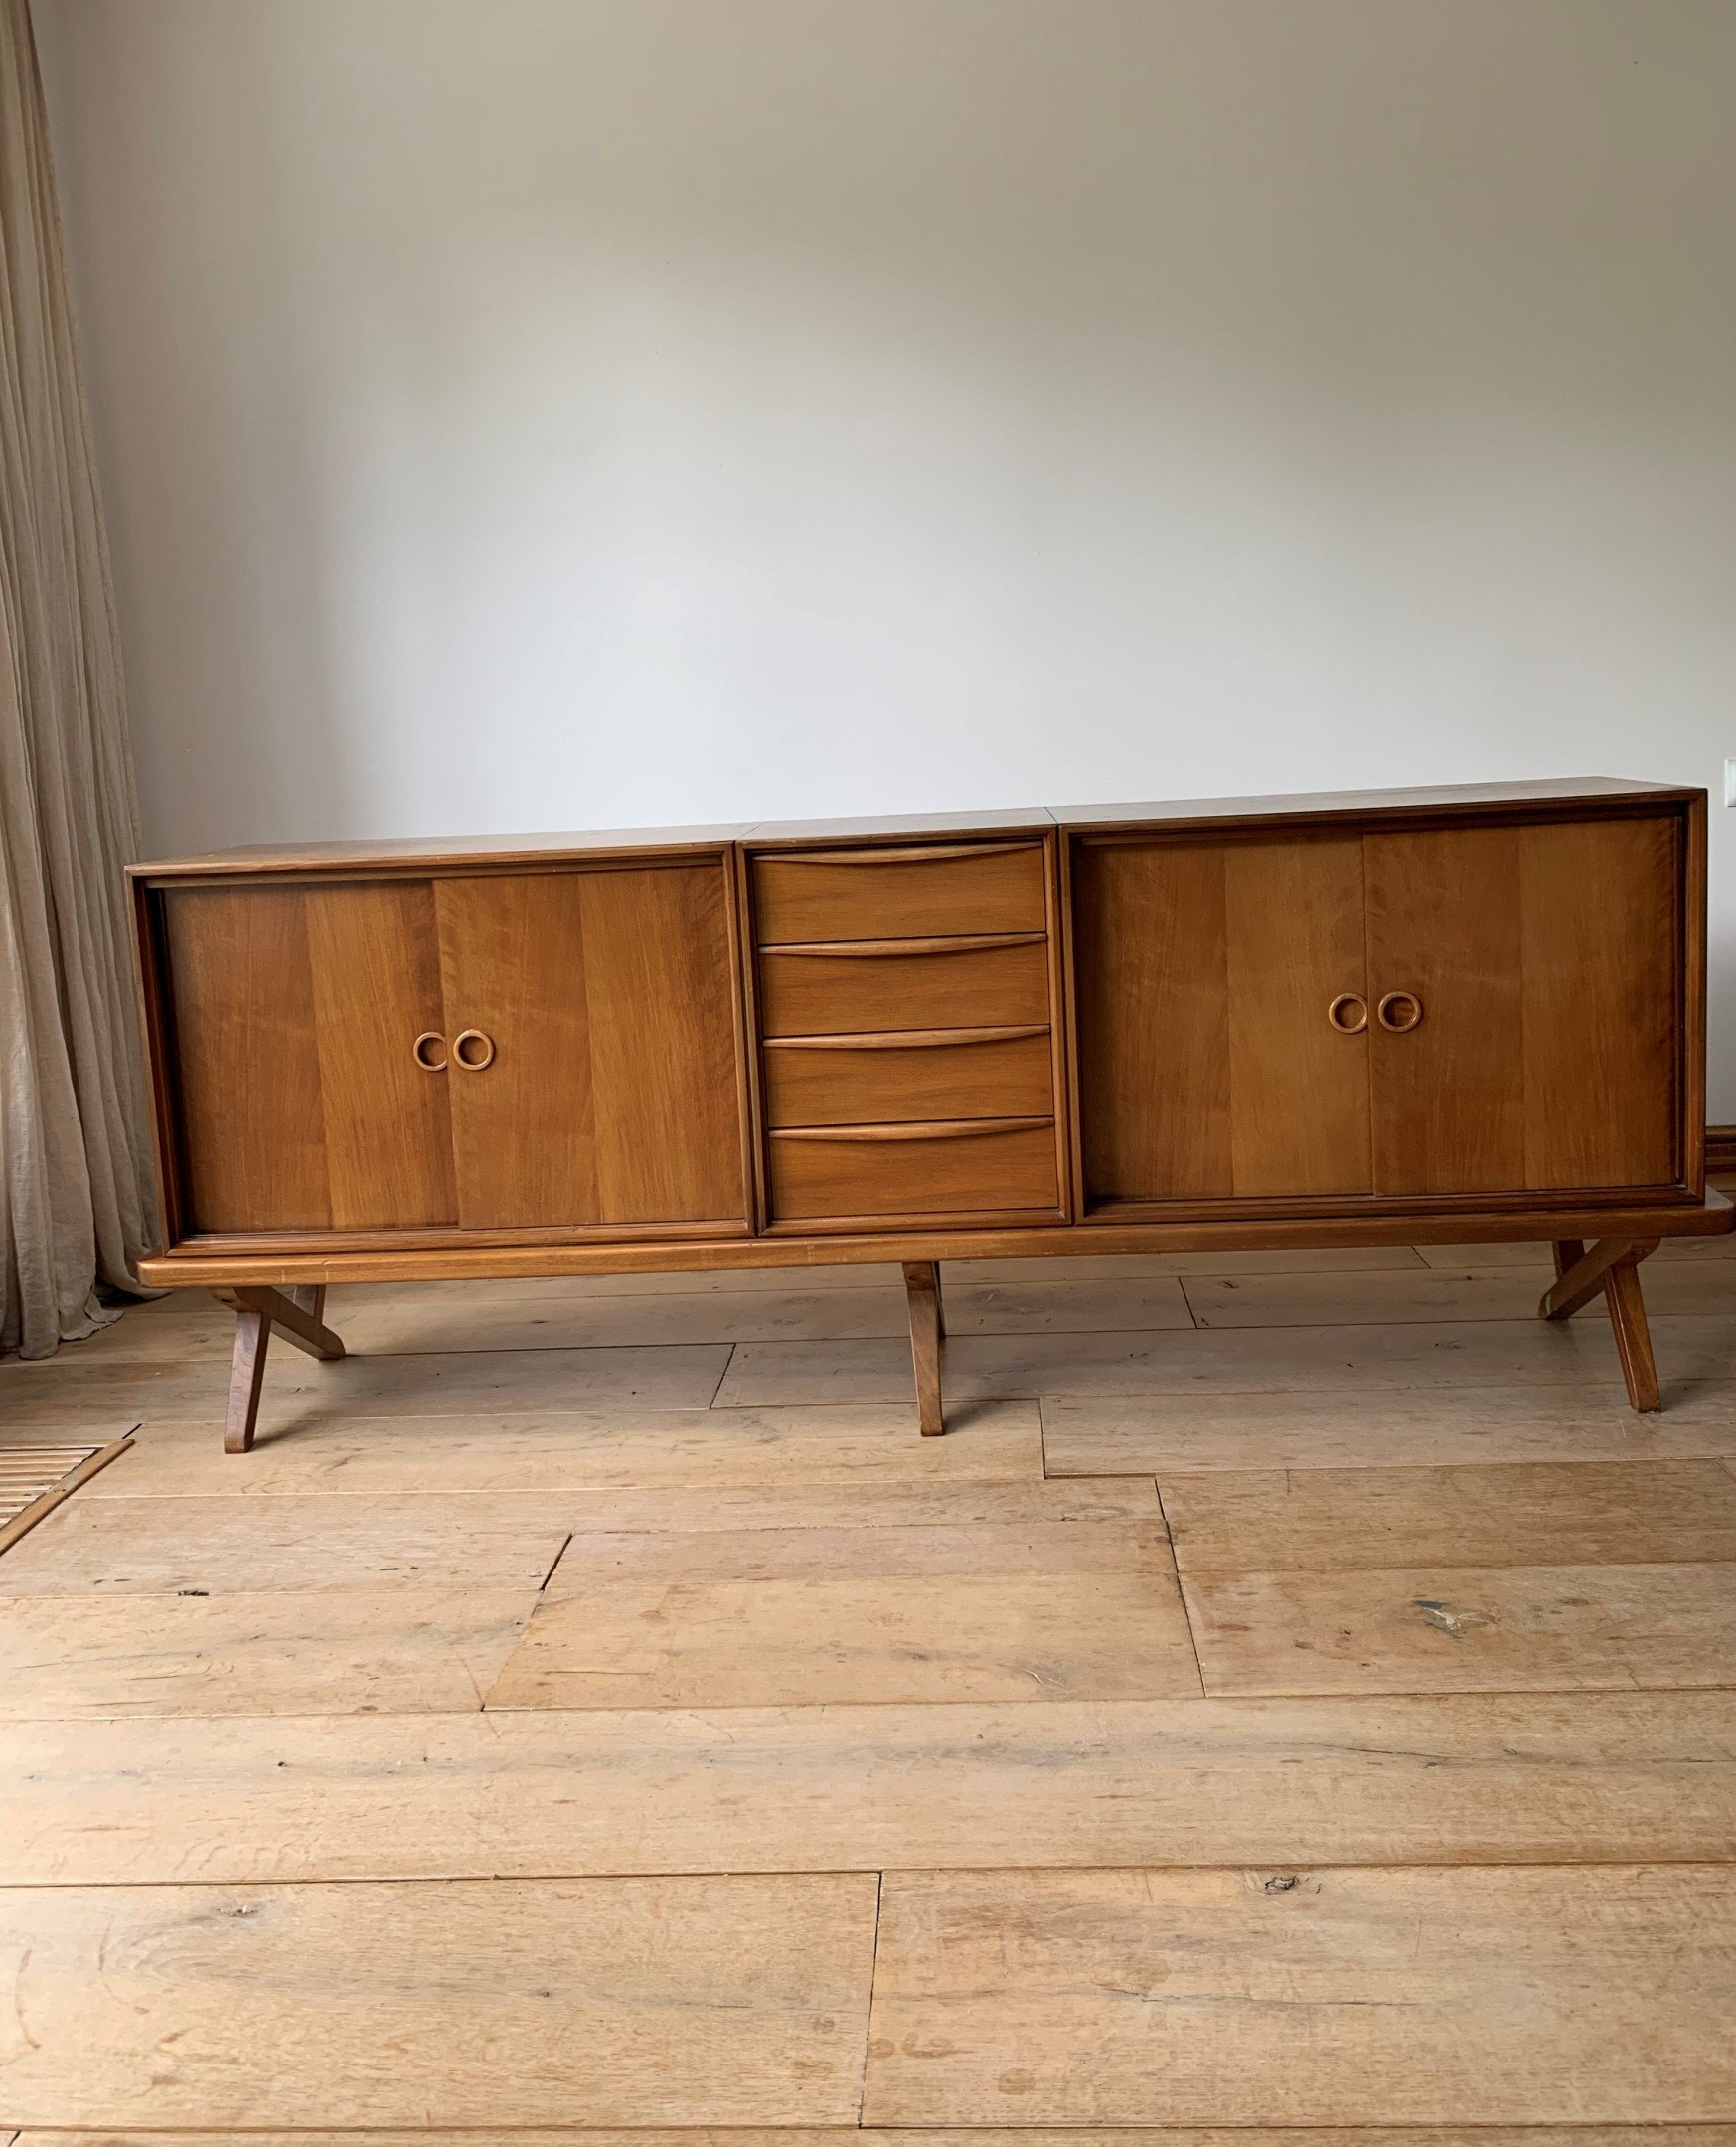 Sideboard by R. Glatzel, Fristho, Netherlands, 1950s - 503082 - photo